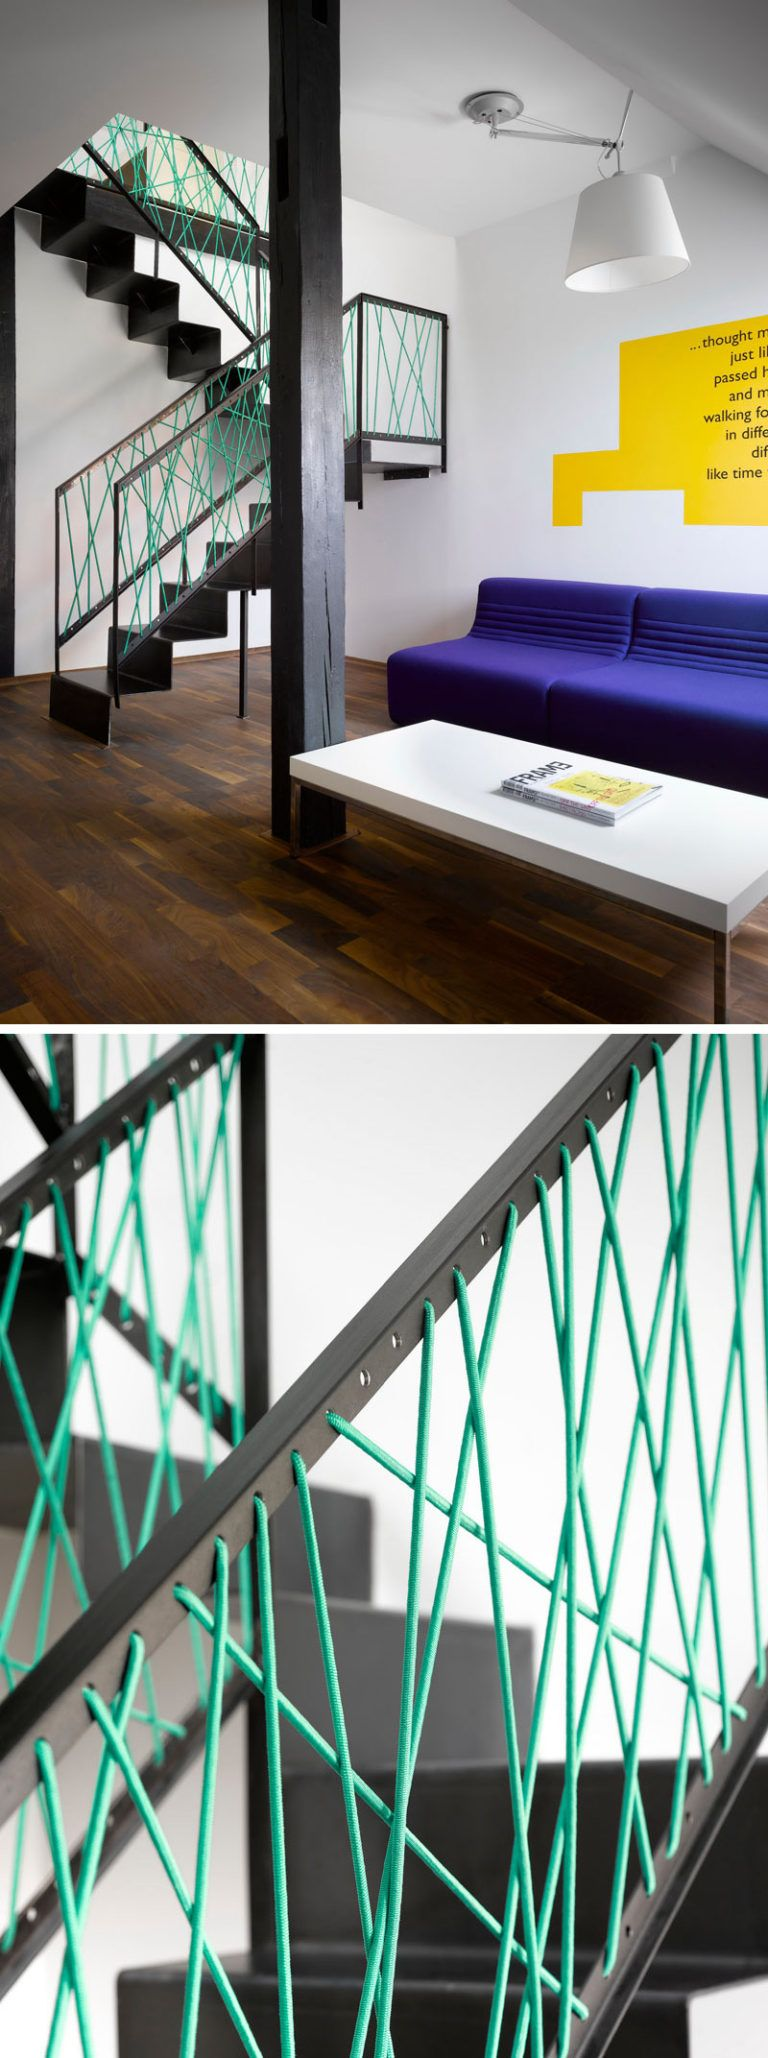 Best 6 Rope Railings That Add A Creative Touch To Stairs Railing Design Stair Railing Design Rope 400 x 300